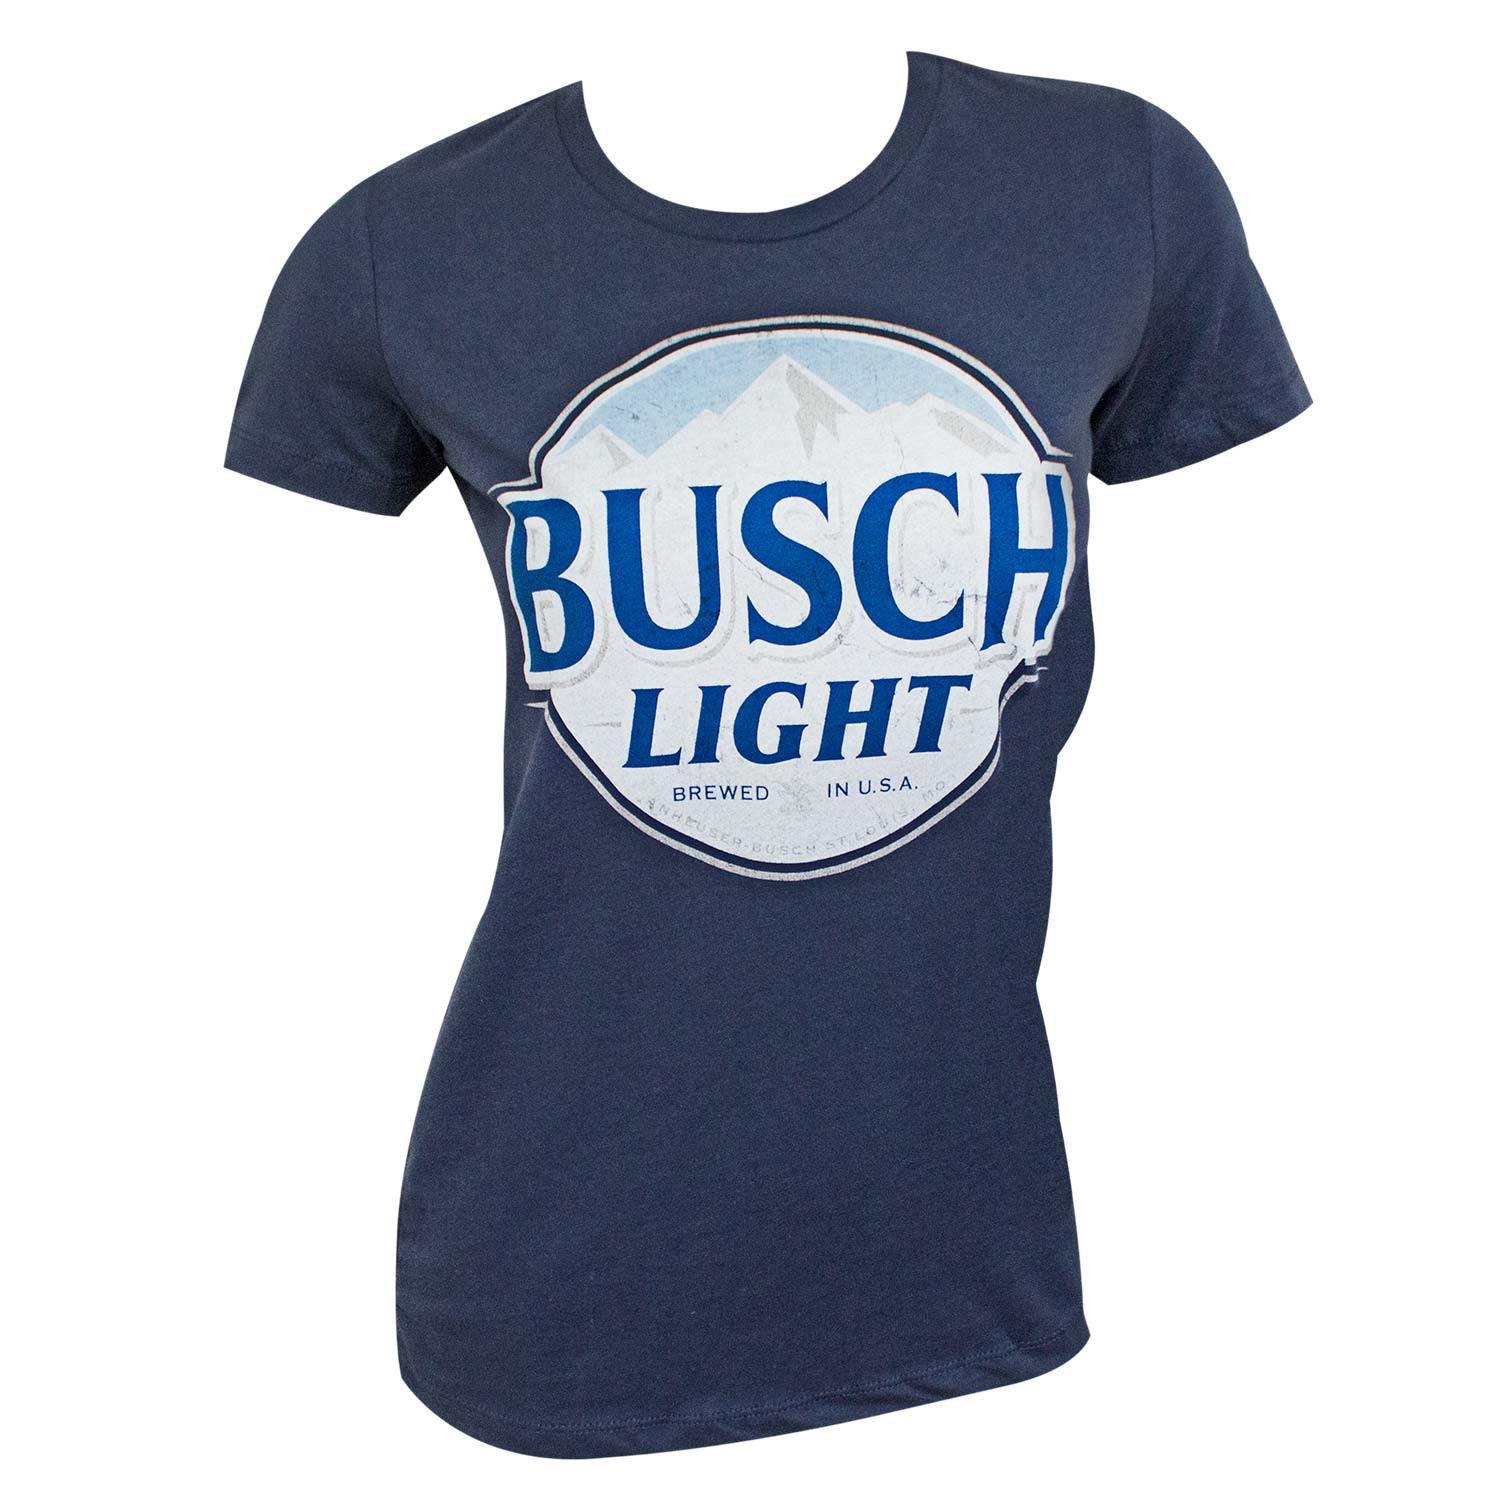 Busch Light Logo Women's Navy Blue T-Shirt